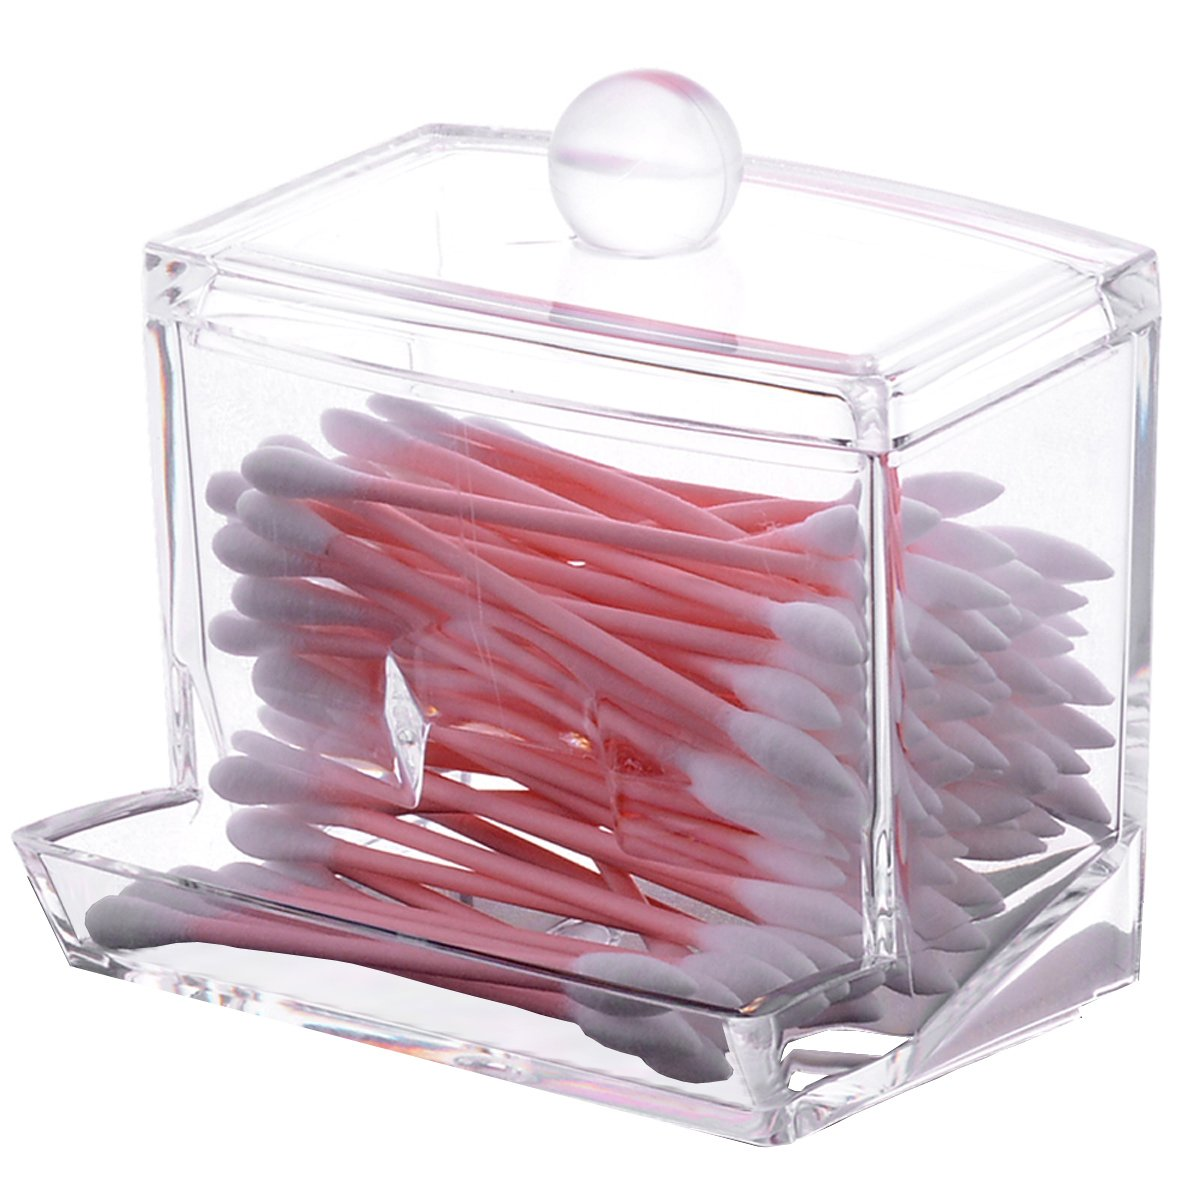 Sooyee Acrylic Cosmetic Q-tip Cotton Swabs Balls Buds Holder Makeup Storage Case Dispenser Organizer, Clear, pack of 1 ny30